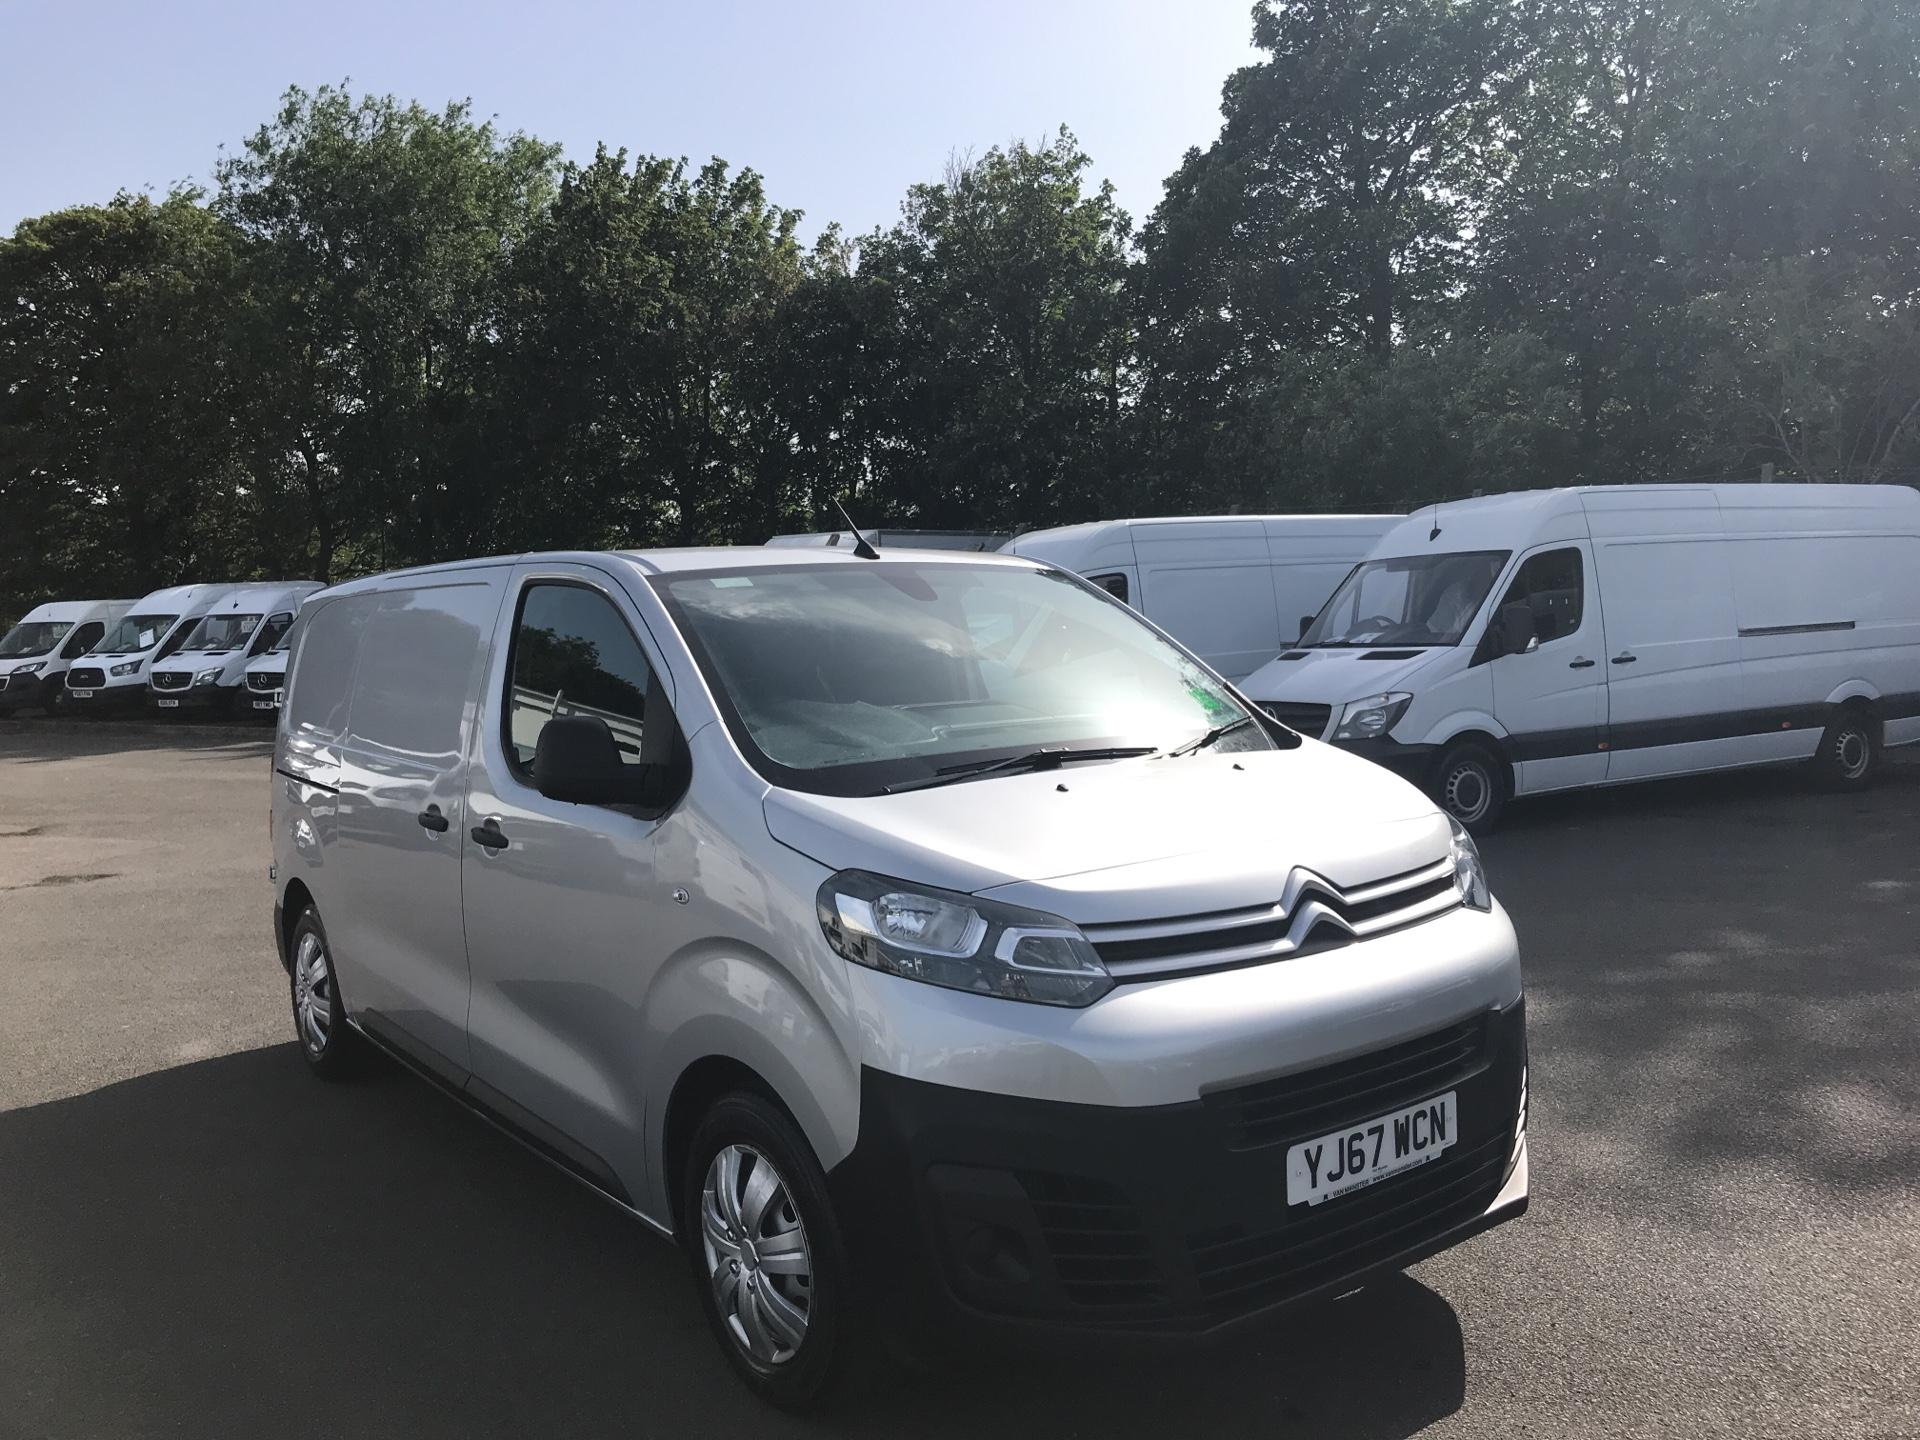 2017 Citroen Dispatch  M DIESEL 1000 1.6 BLUE HDI 95 ENTERPRISE EURO 6 (YJ67WCN)